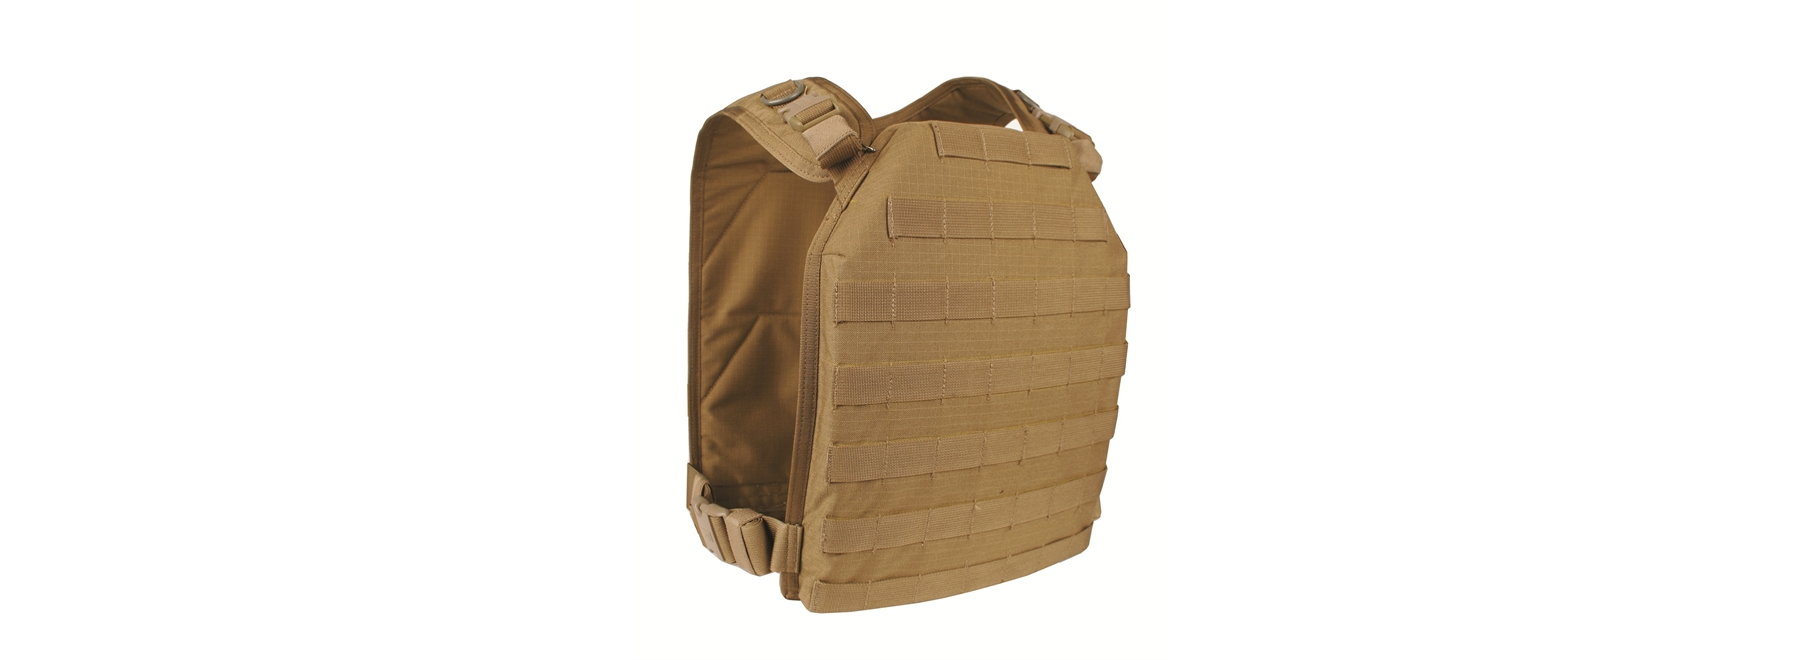 Lightweight S.T.R.I.K.E.® Plate Carrier Harness (Front & Back)